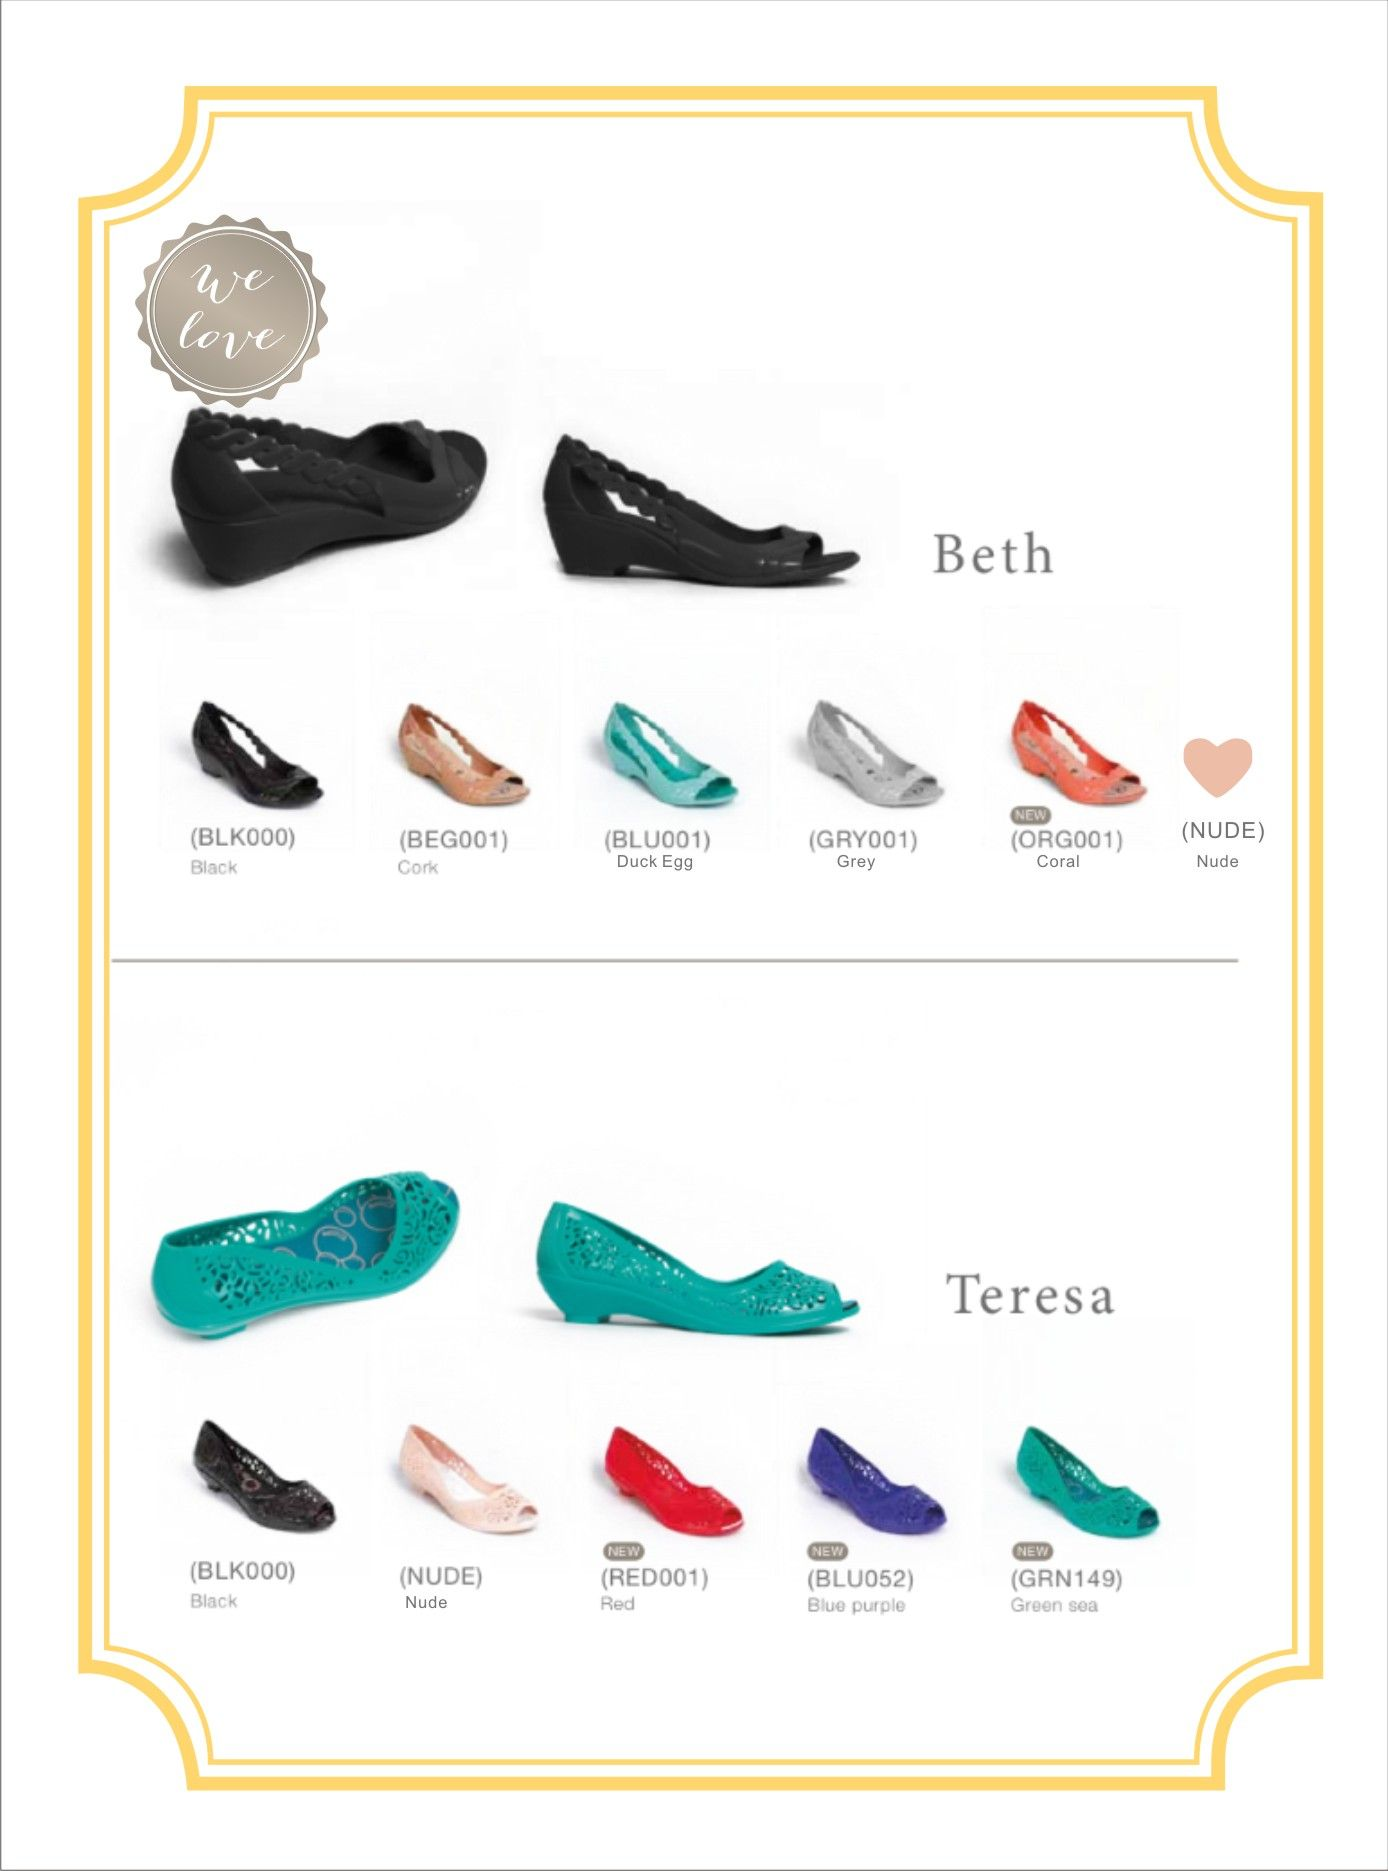 9a4c1ca064f7 The Perfect shoe for the office or going out on the town.